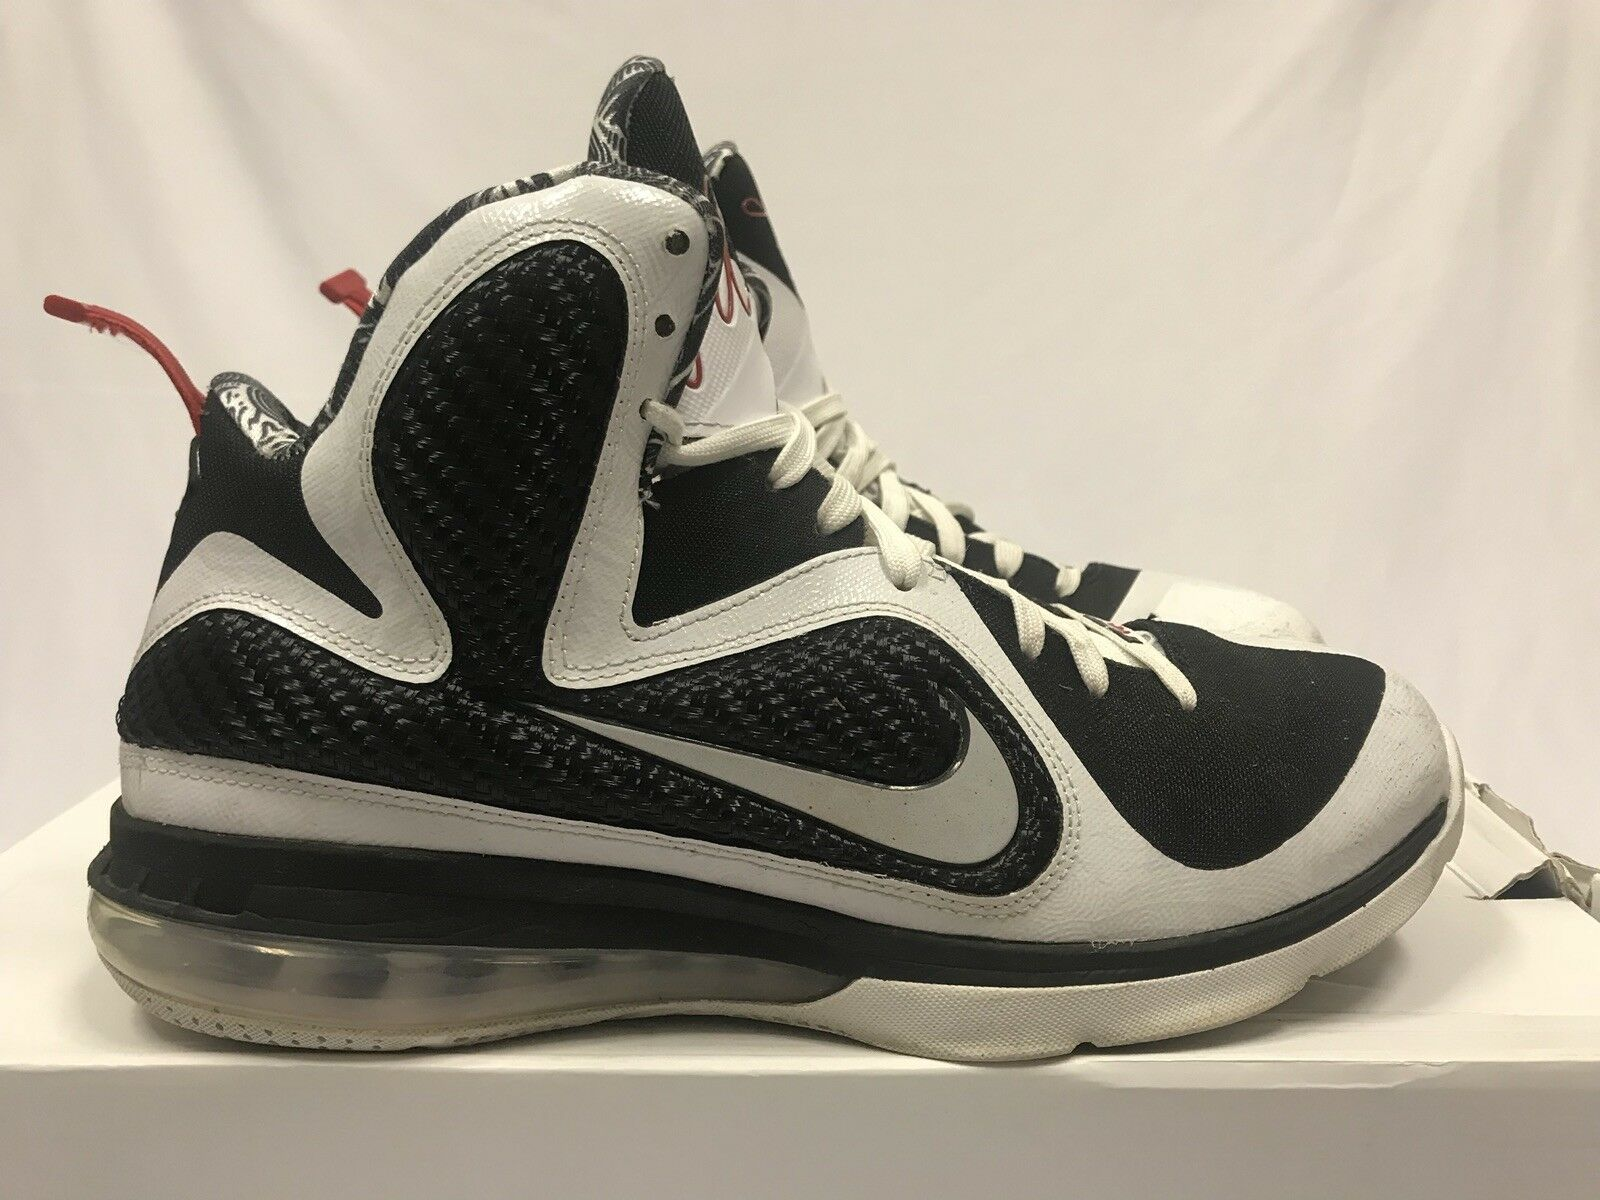 Nike Lebron 9 Freegum Size 10.5 Black White